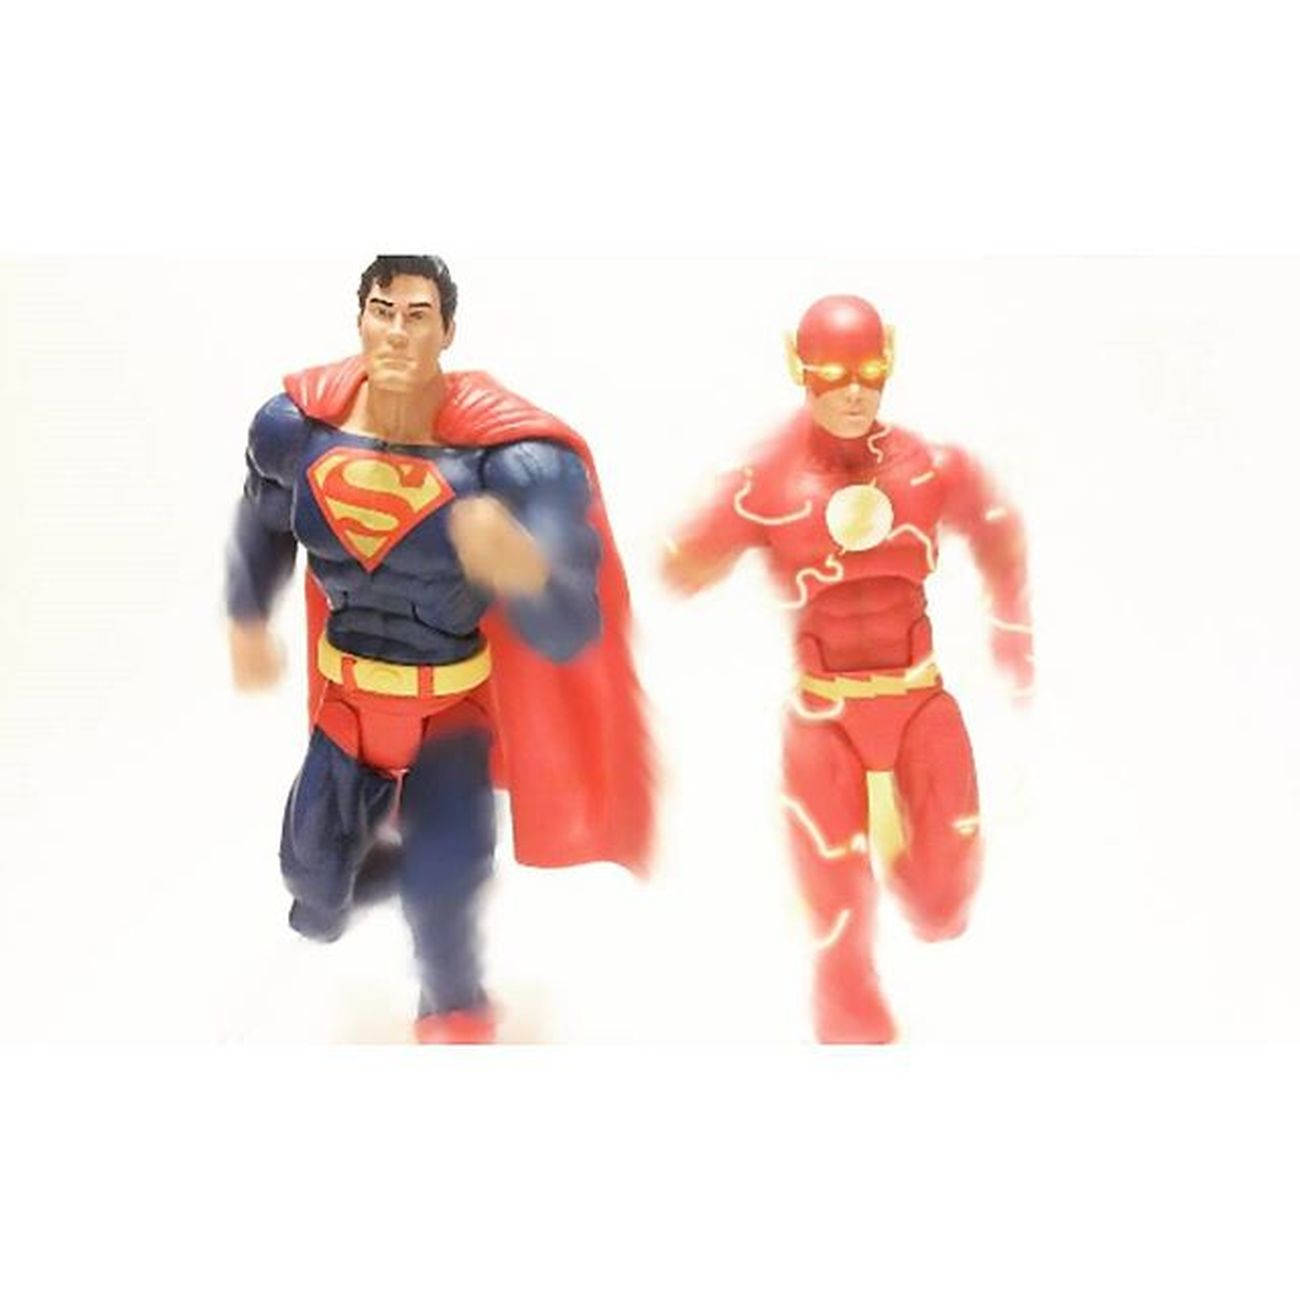 """The biggest event in the world The man of steel and Scarlet speedster race to raise money for charity!"" Toycommunity Toycollector Toystagram Toyslagram Rebeltoysclub Ata_dreadnoughts Toygroup_alliance Toyleague Toypops Toycrewbuddies Toyartistry_elite Toyelites Toyporn Toyboner Toyphotogallery Toyphotogram Toysaremydrugs Toysarehellasick Actionfigurephotography Actionfigures Toycreativity ACBA Epictoyart Articulatedcomicbookart Toyunion toynation toyrevolution toyuniverse toyplanet dcicons"